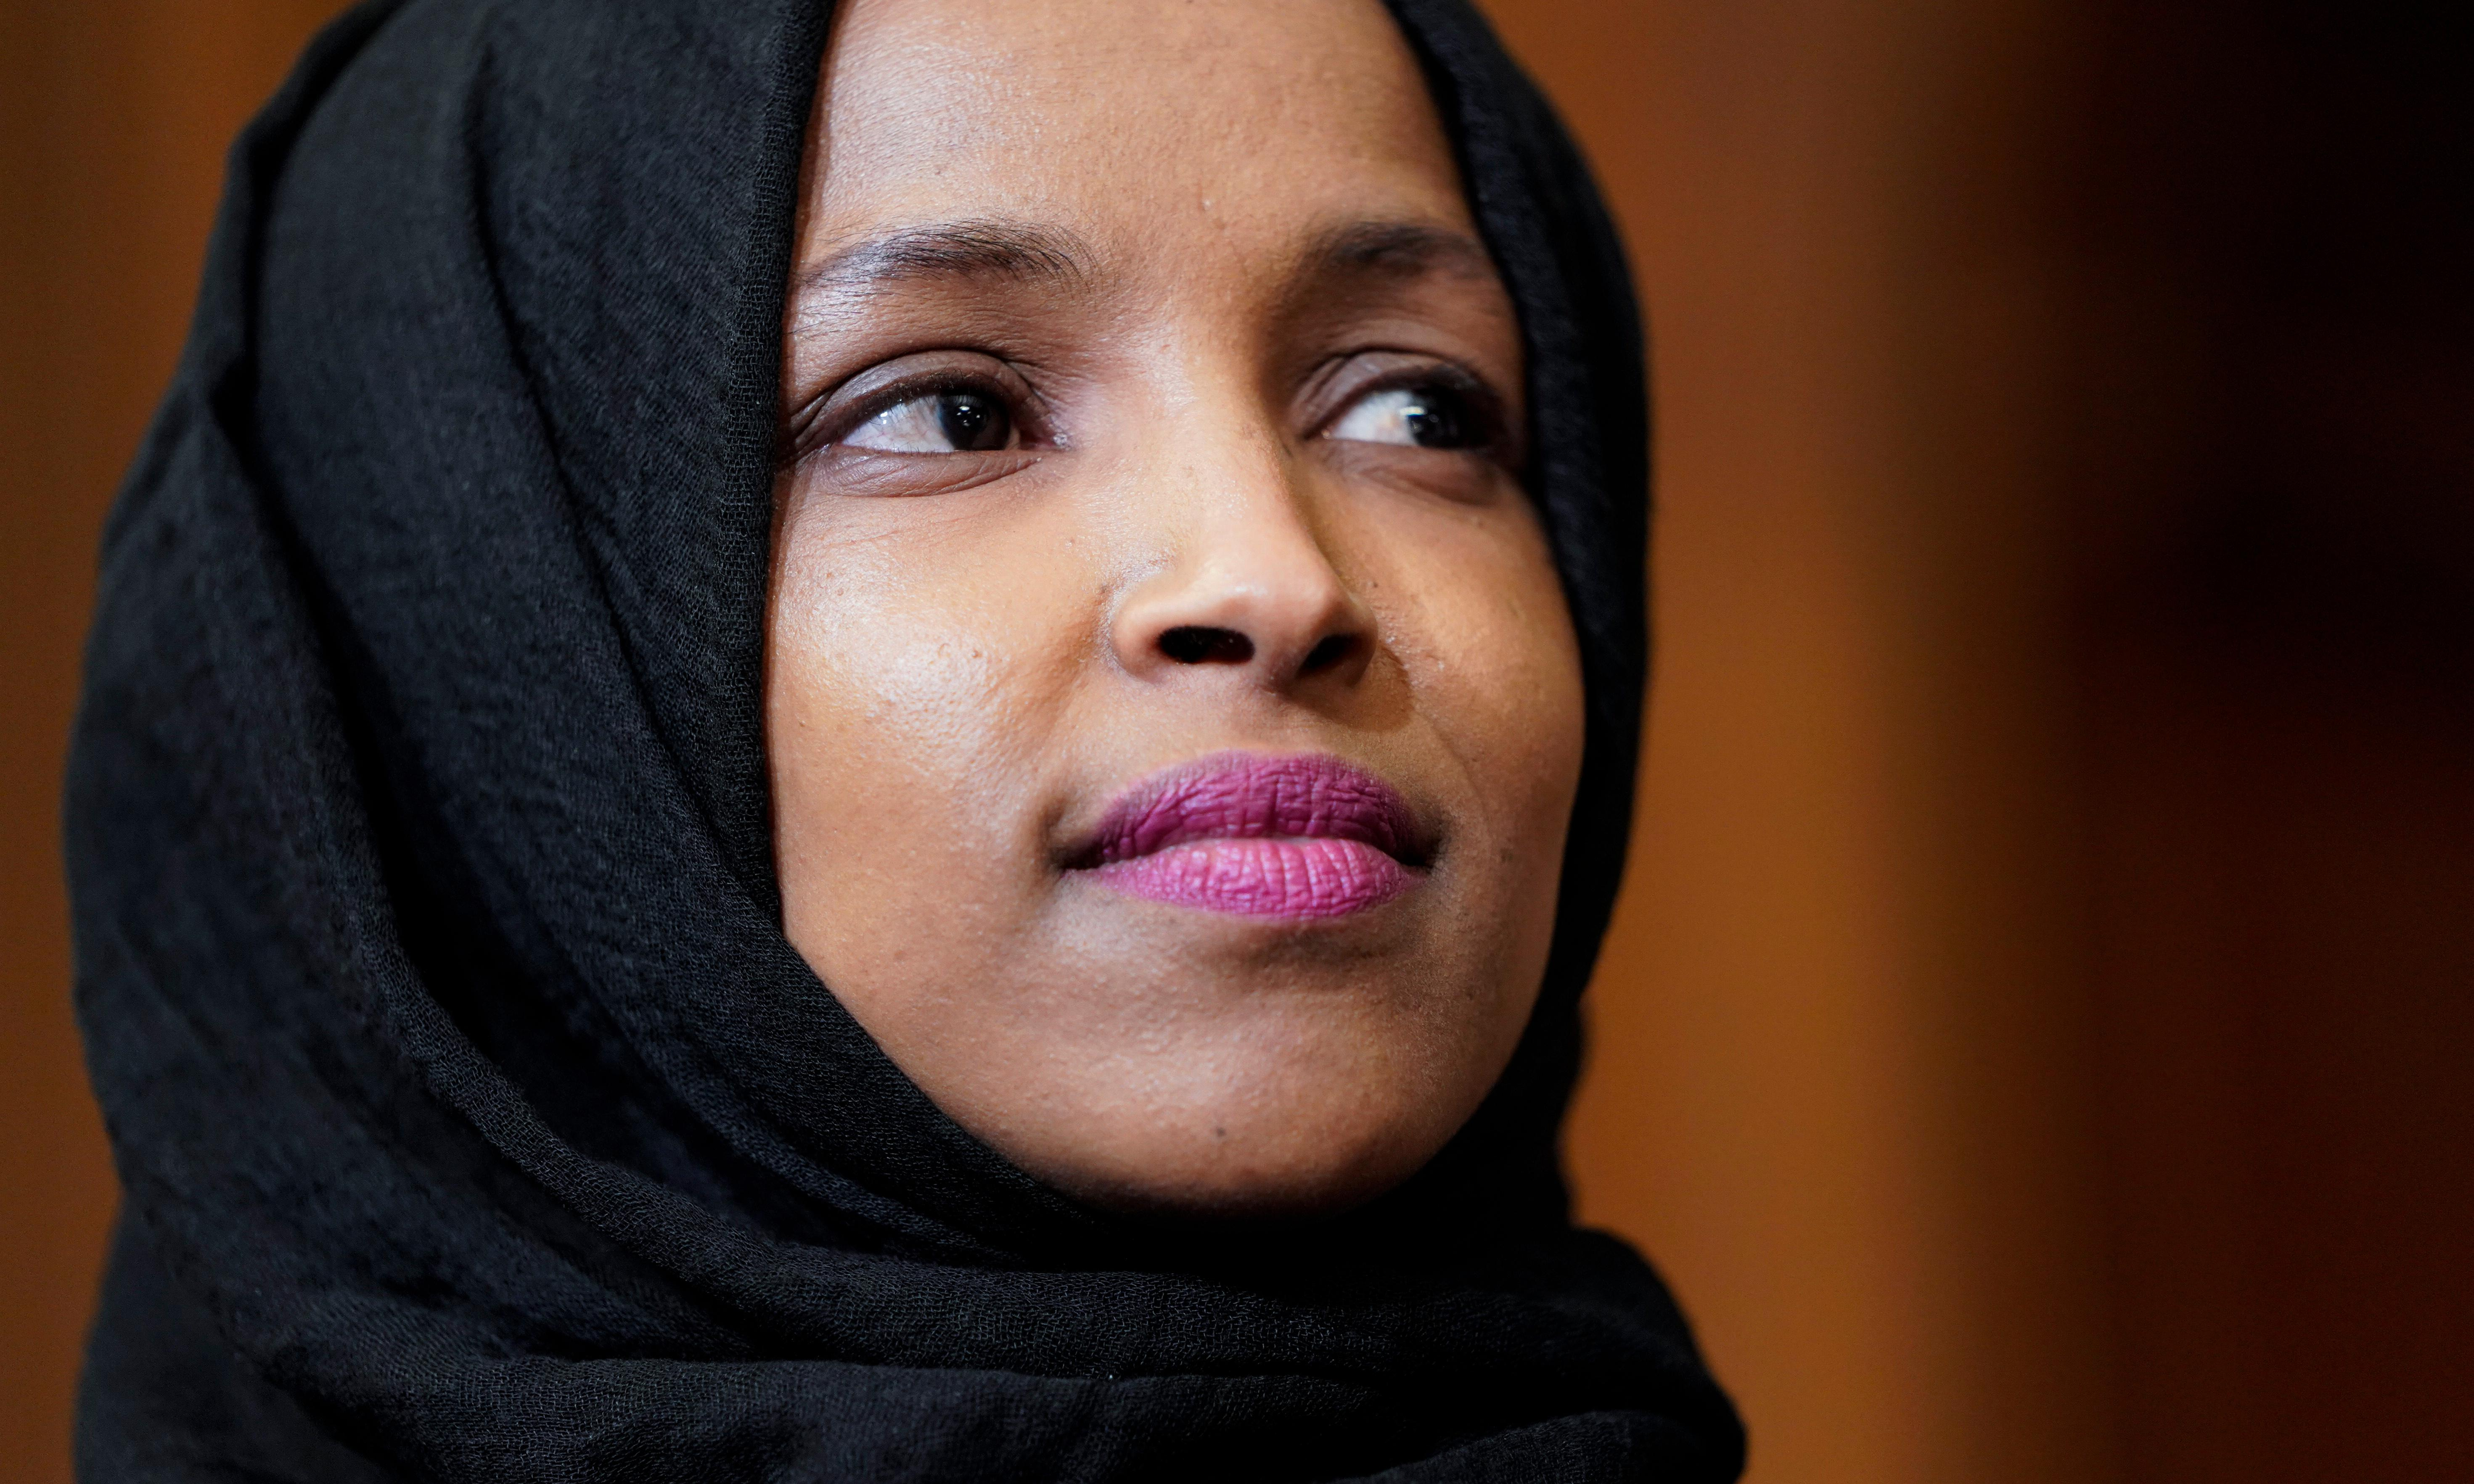 Ilhan Omar pleads for compassion for man who threatened her life